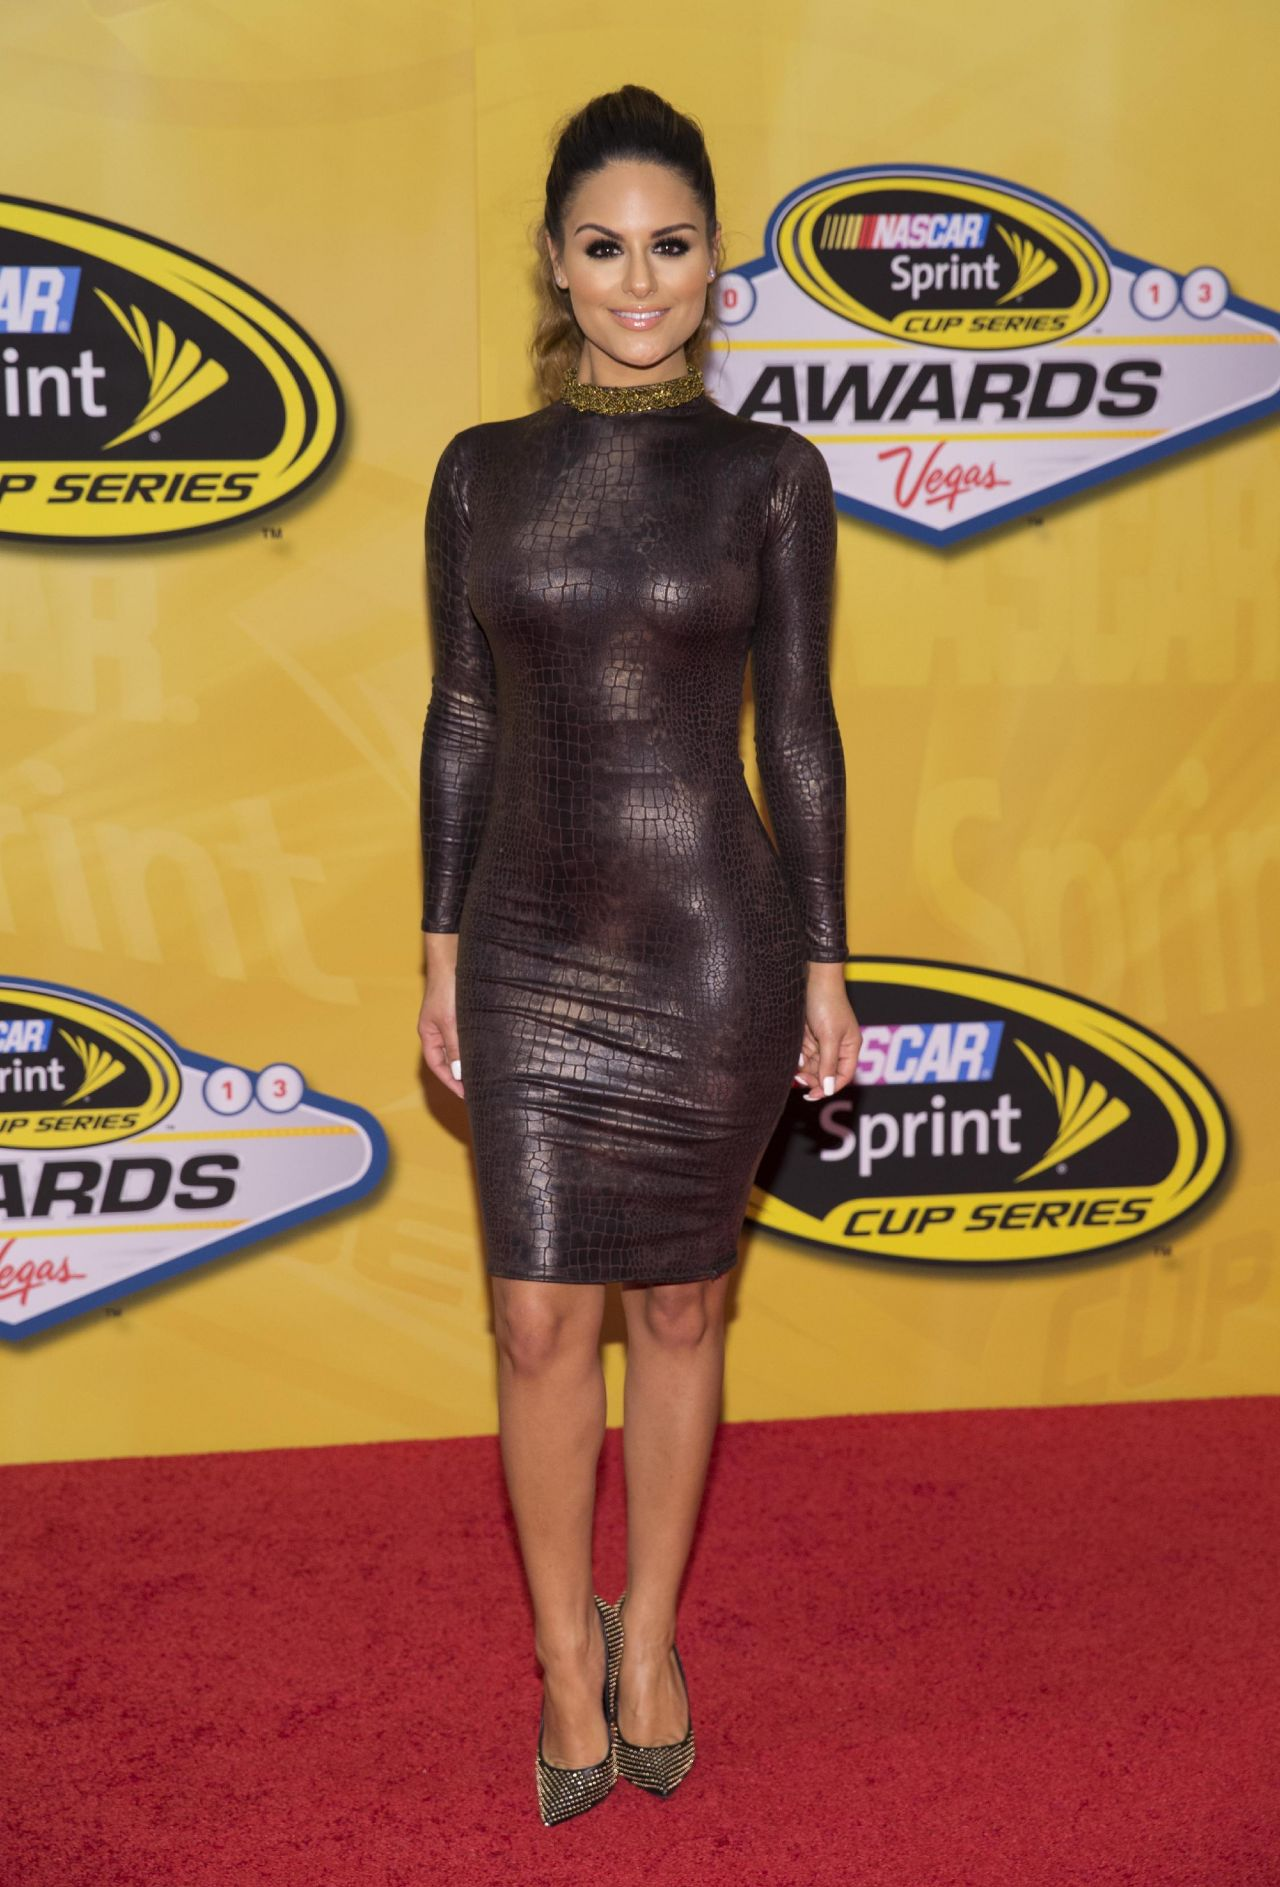 Pia Toscano on Red Carpet - 2013 NASCAR Sprint Cup Series Champion